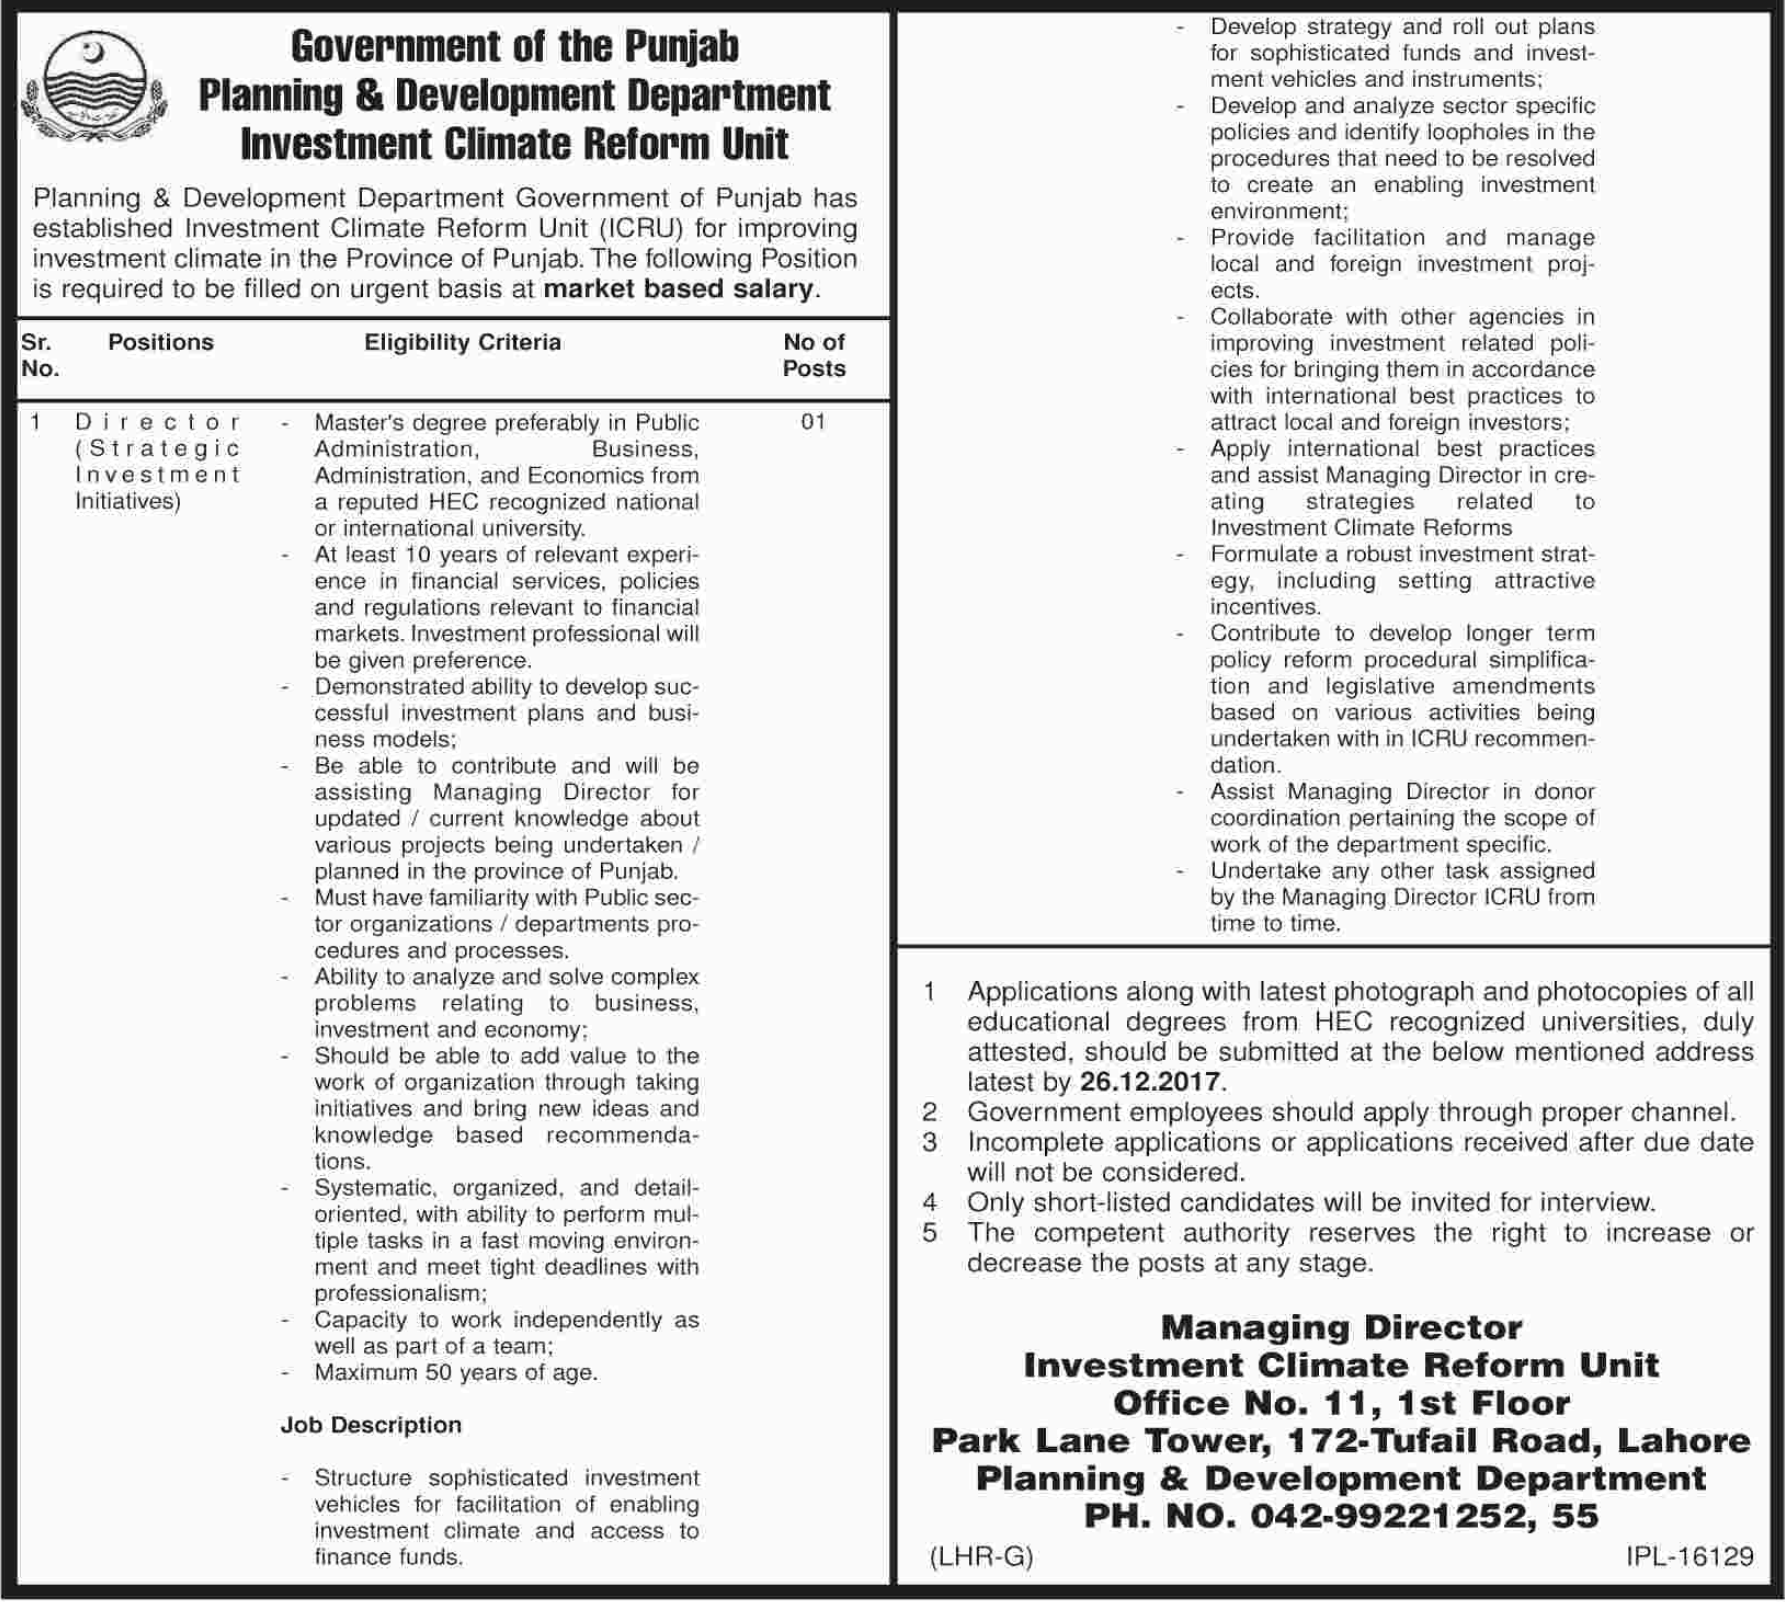 ICRU Punjab Investment Climate Reform Unit required Director